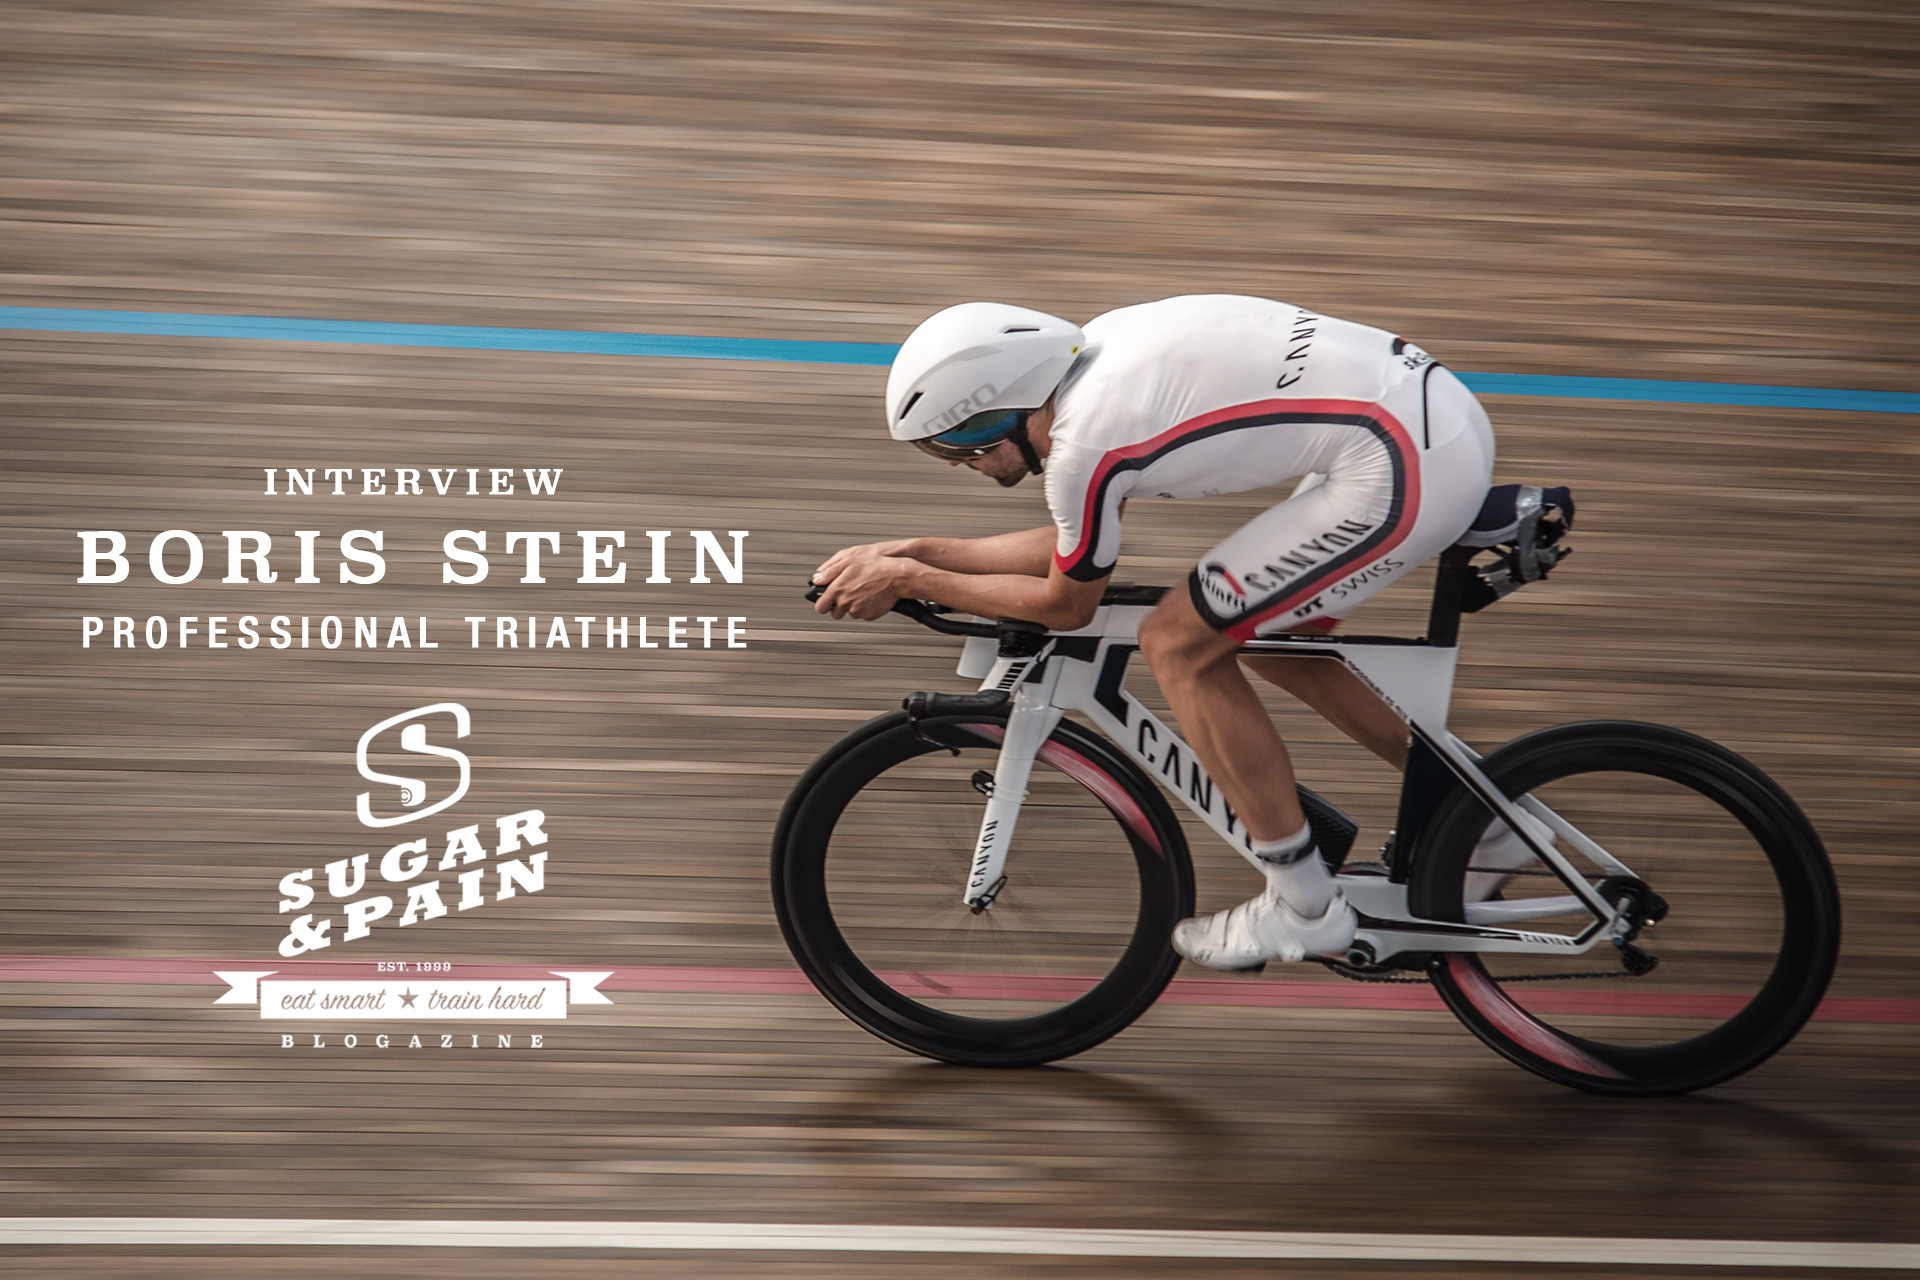 INTERVIEW BORIS STEIN Über seine Motivation, Triathlon und Doping / Aerodynamiktests mit dem Canyon Speedmax im